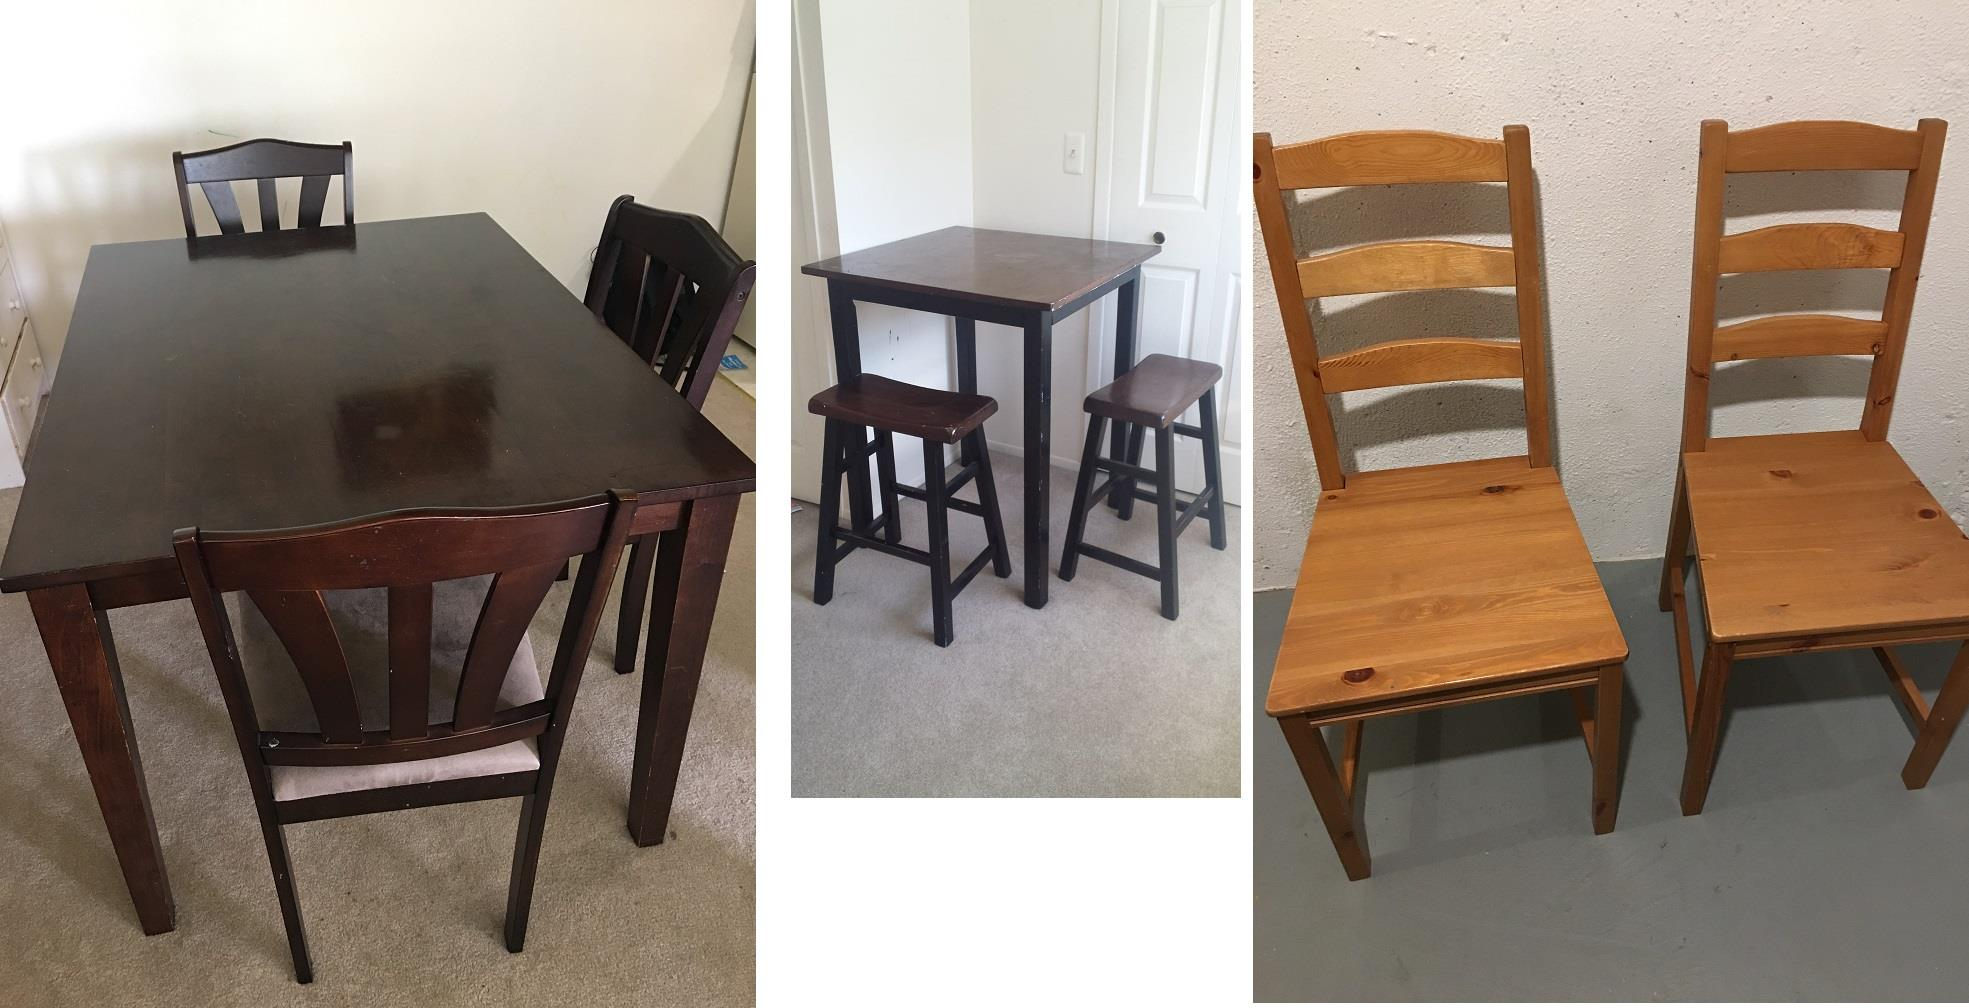 Location Westland Dining Table with 3 Chair